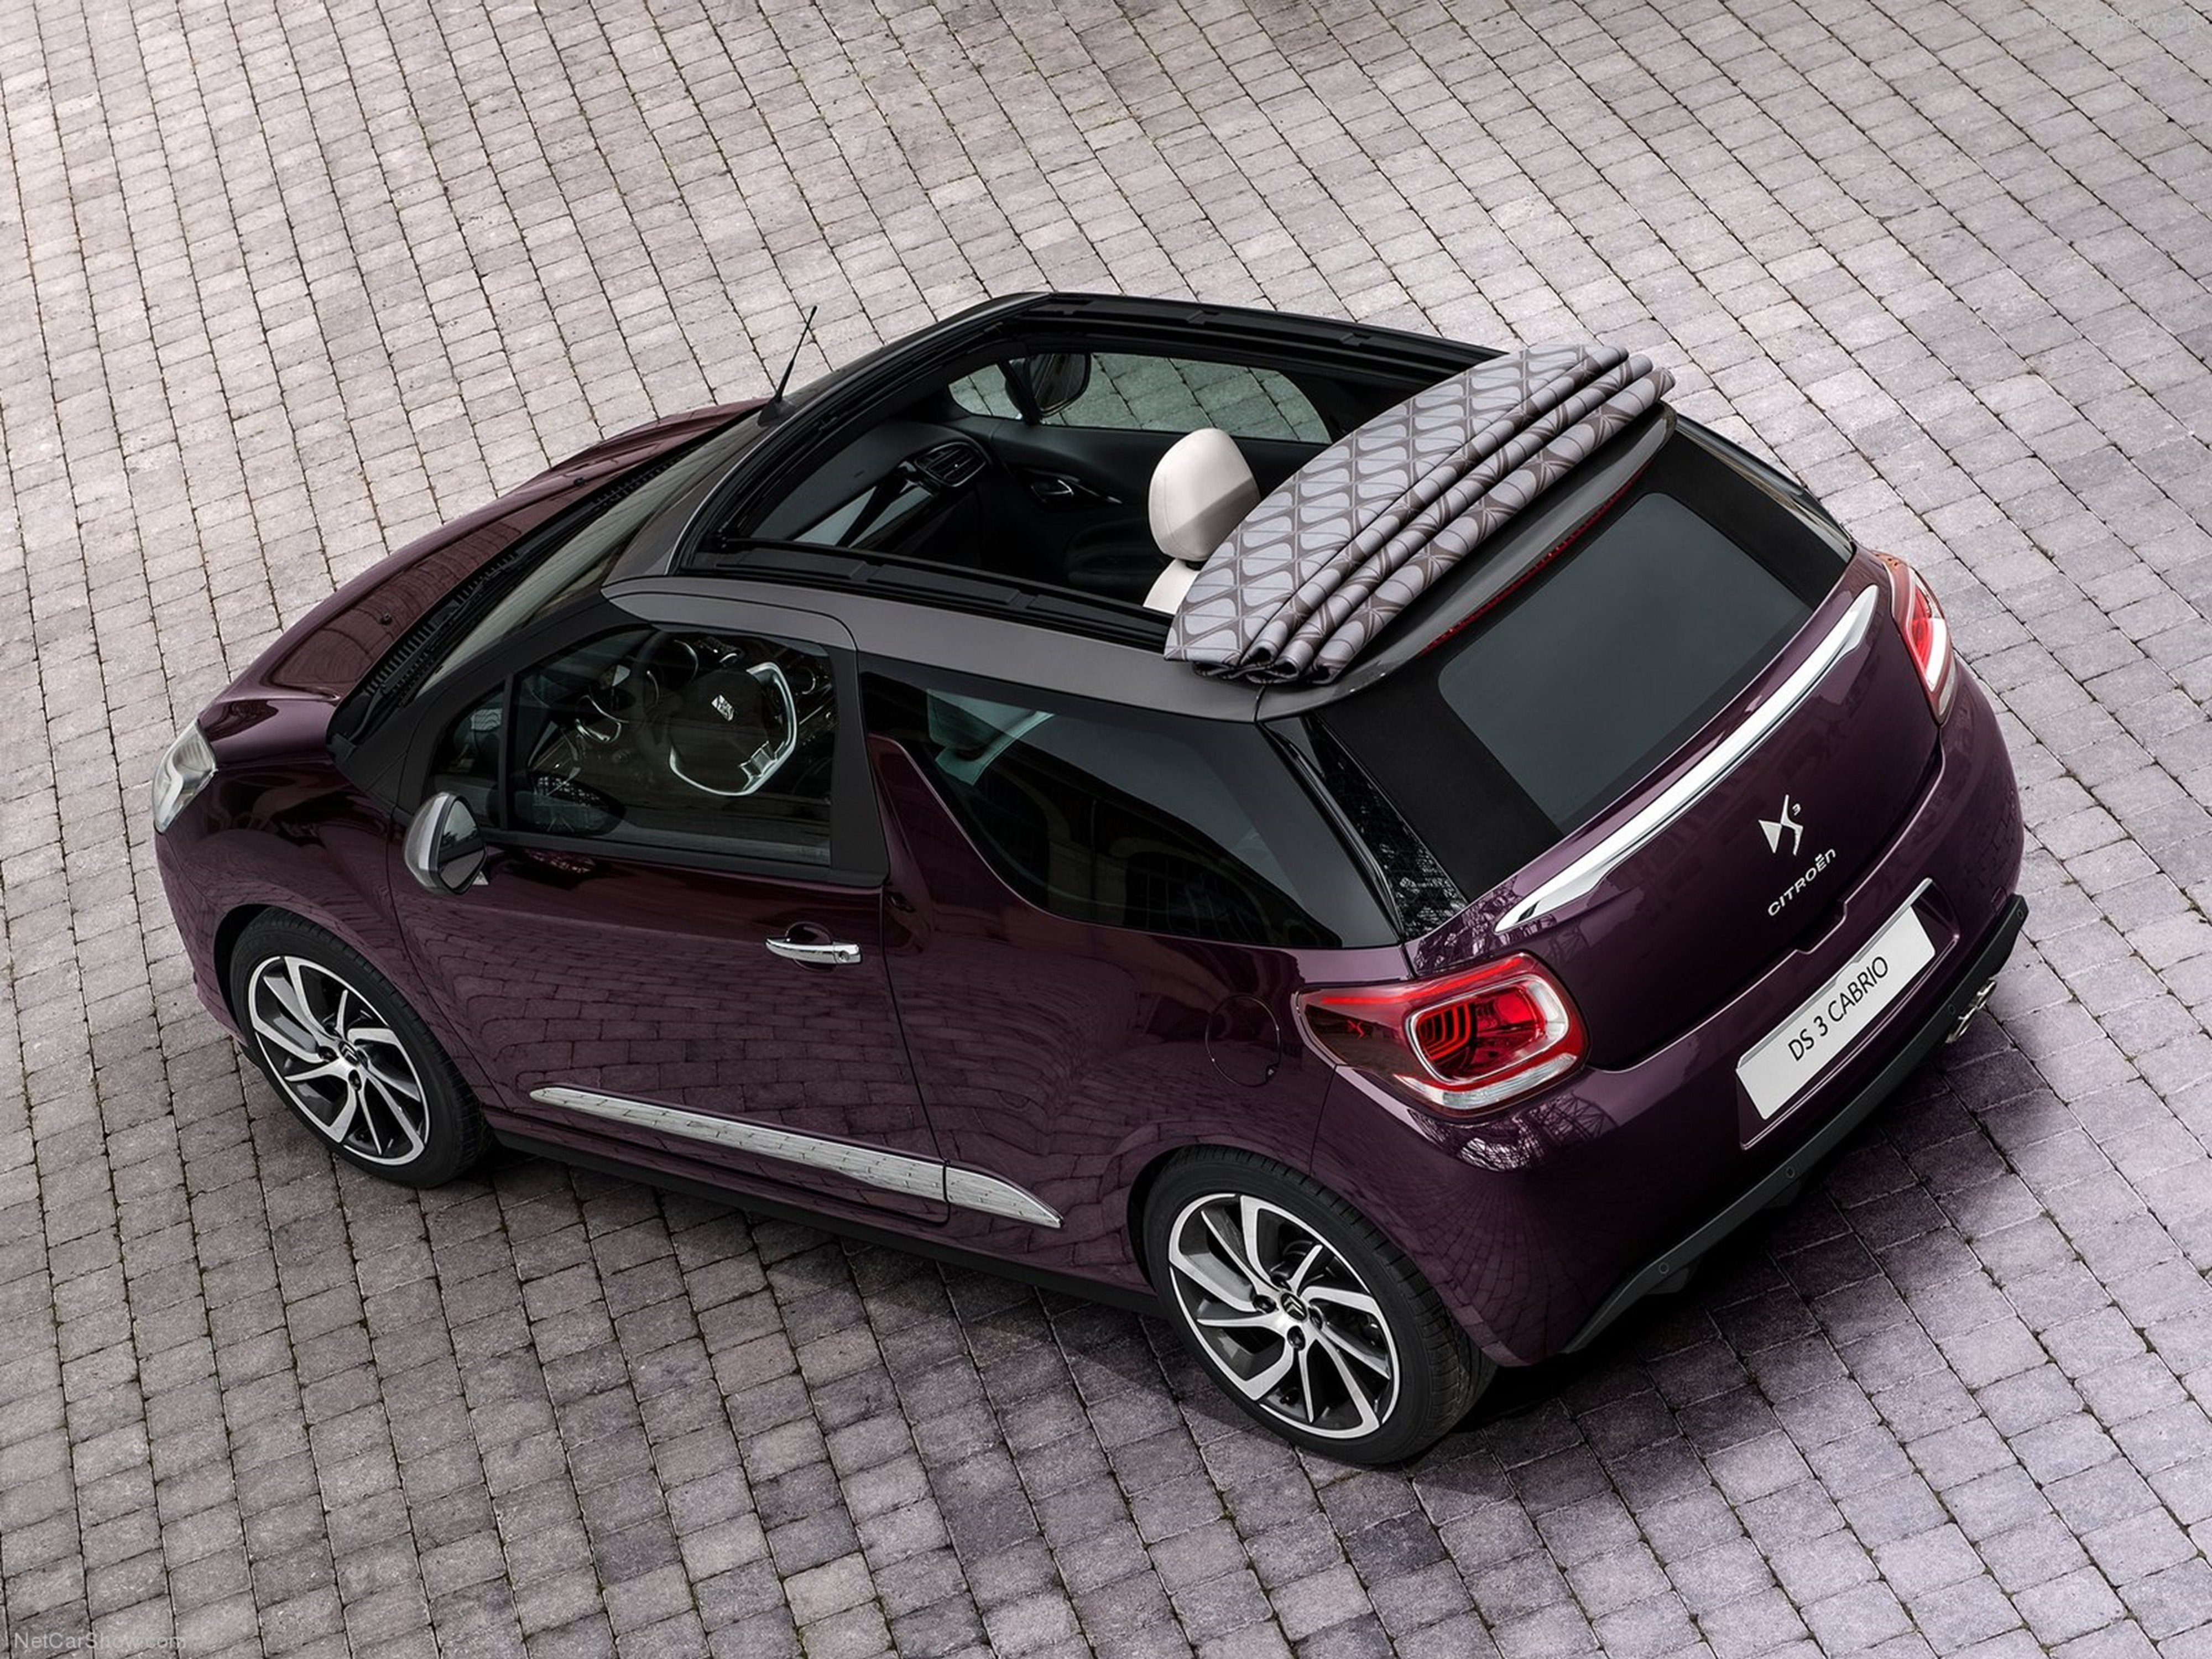 citroen ds3 cabrio convertible car compact france 2015 wallpaper 4000x3000 wallpaper 4000x3000. Black Bedroom Furniture Sets. Home Design Ideas